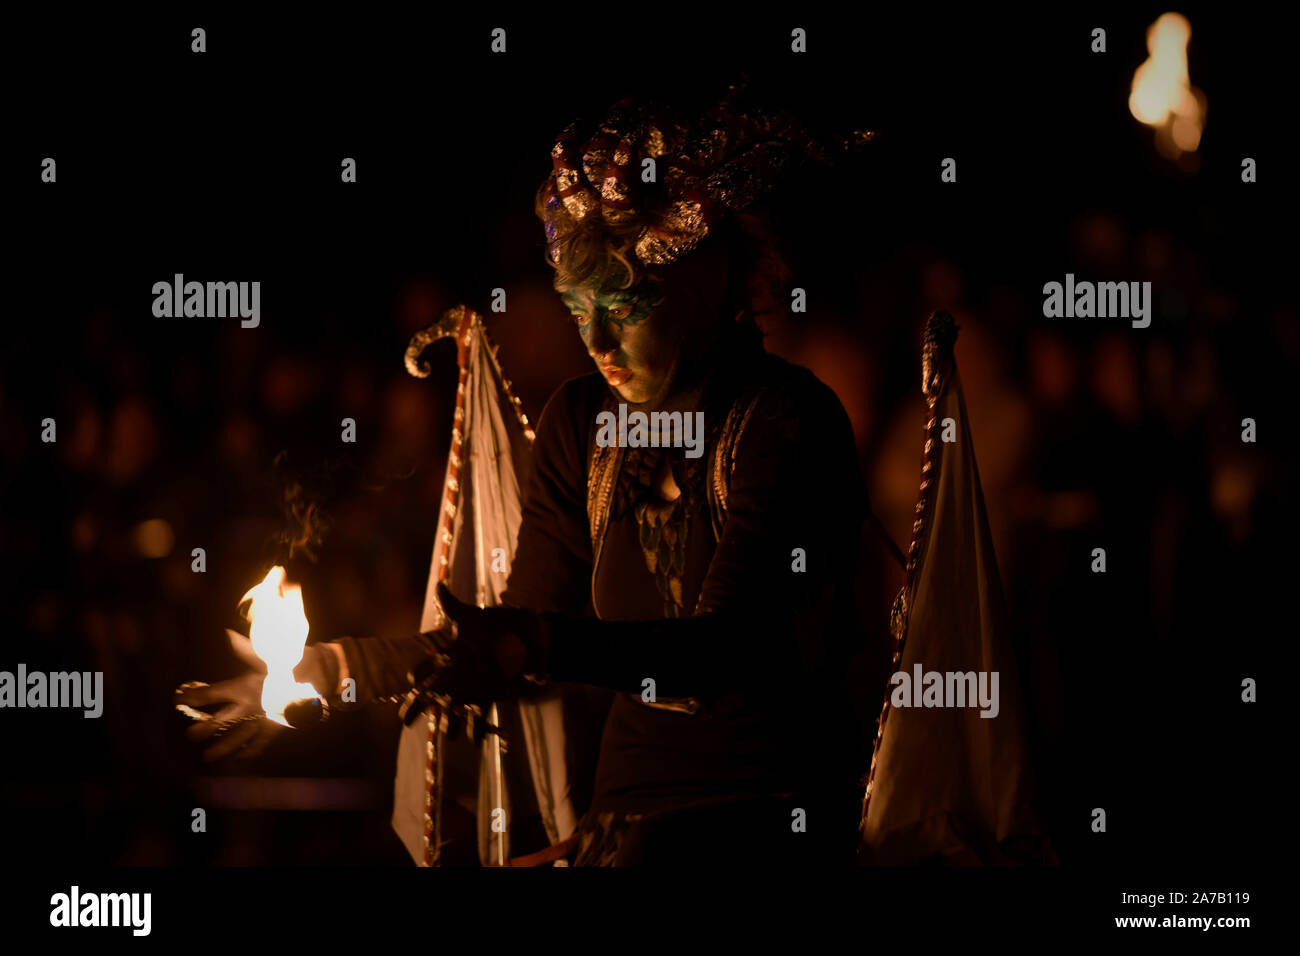 Fire Drums Stock Photos & Fire Drums Stock Images - Alamy